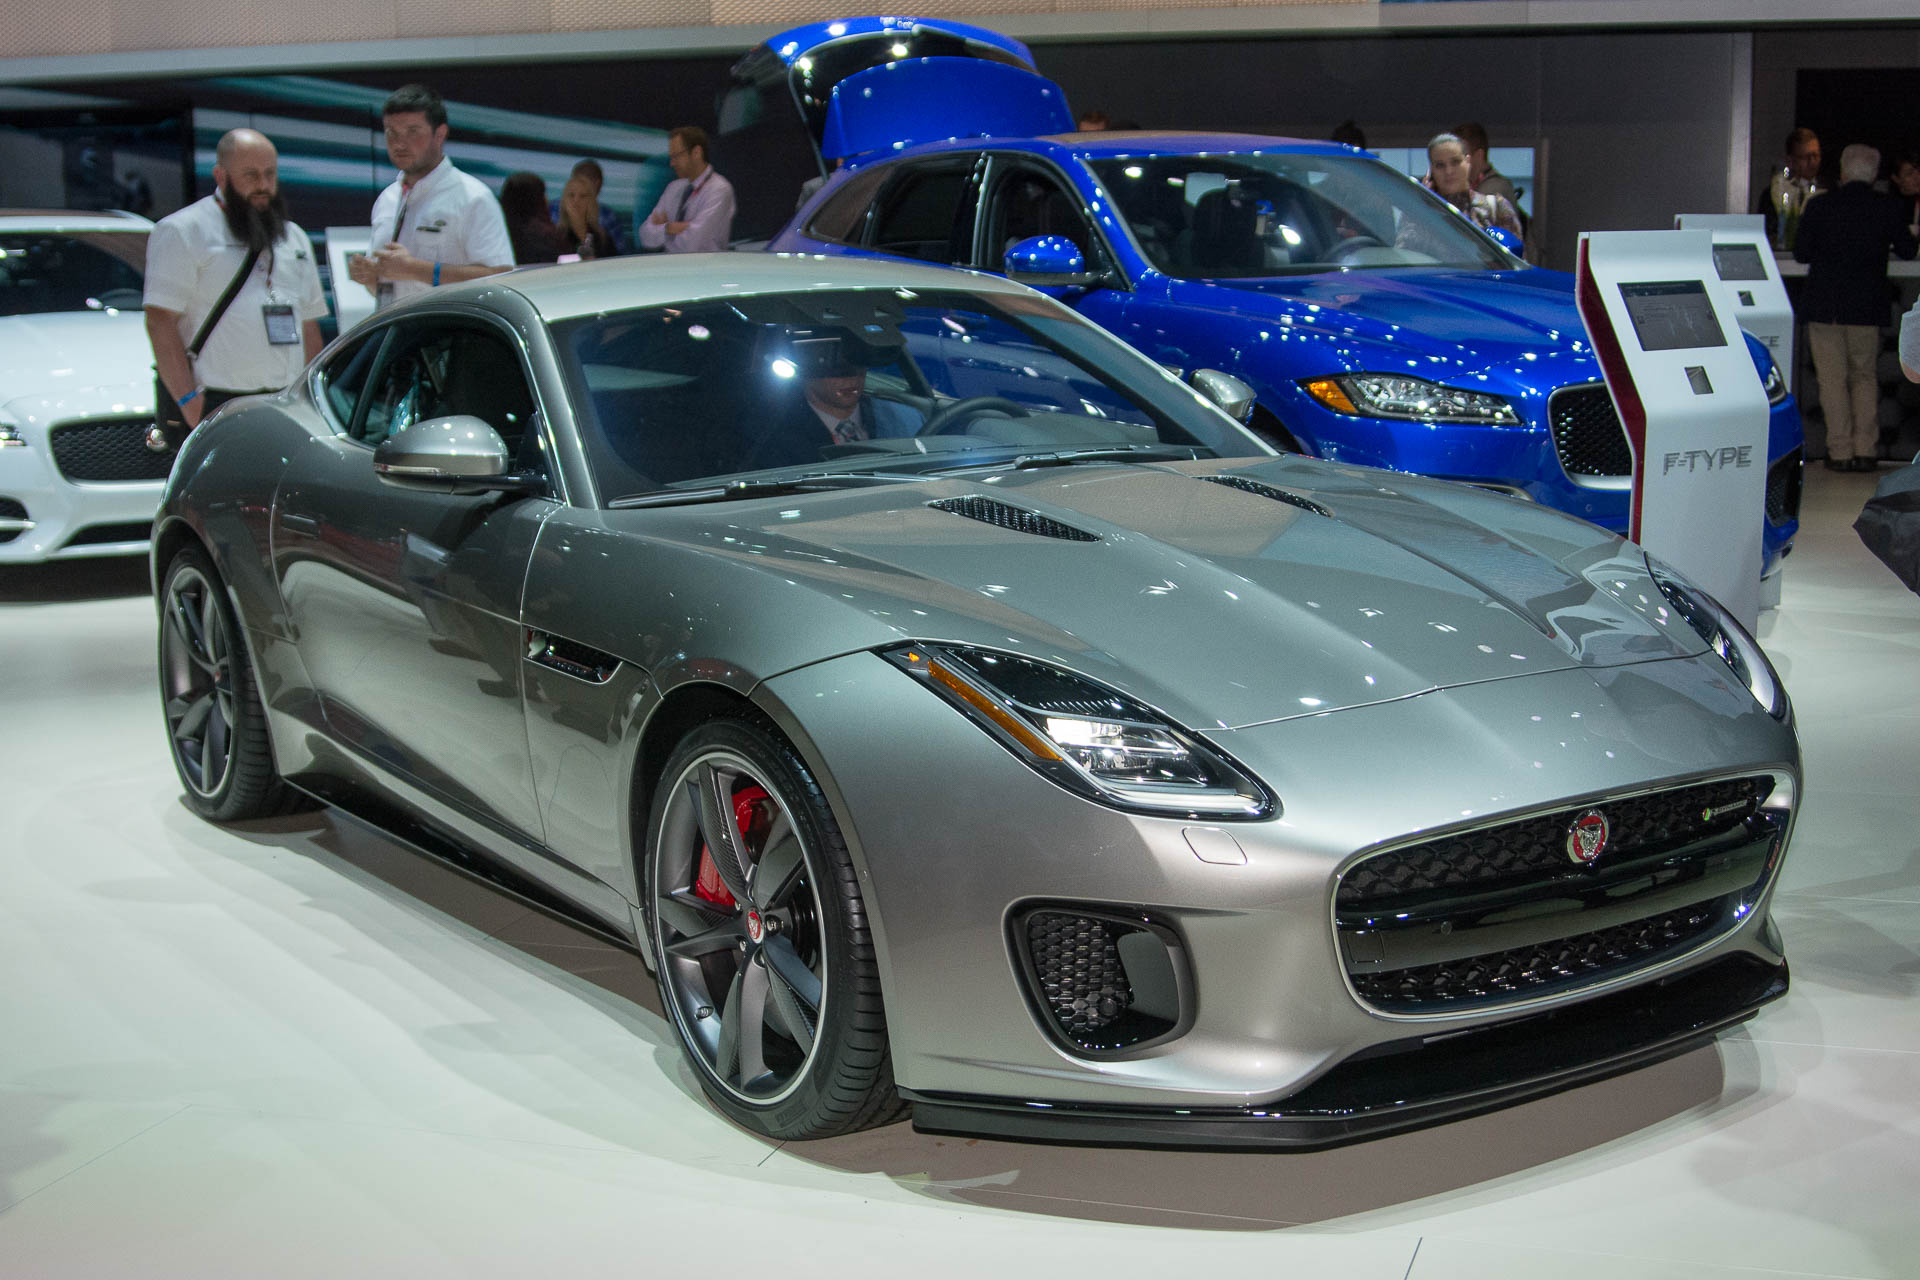 Jaguar FType Pricing Drops To With Addition Of Cylinder - 4 cylinder jaguar